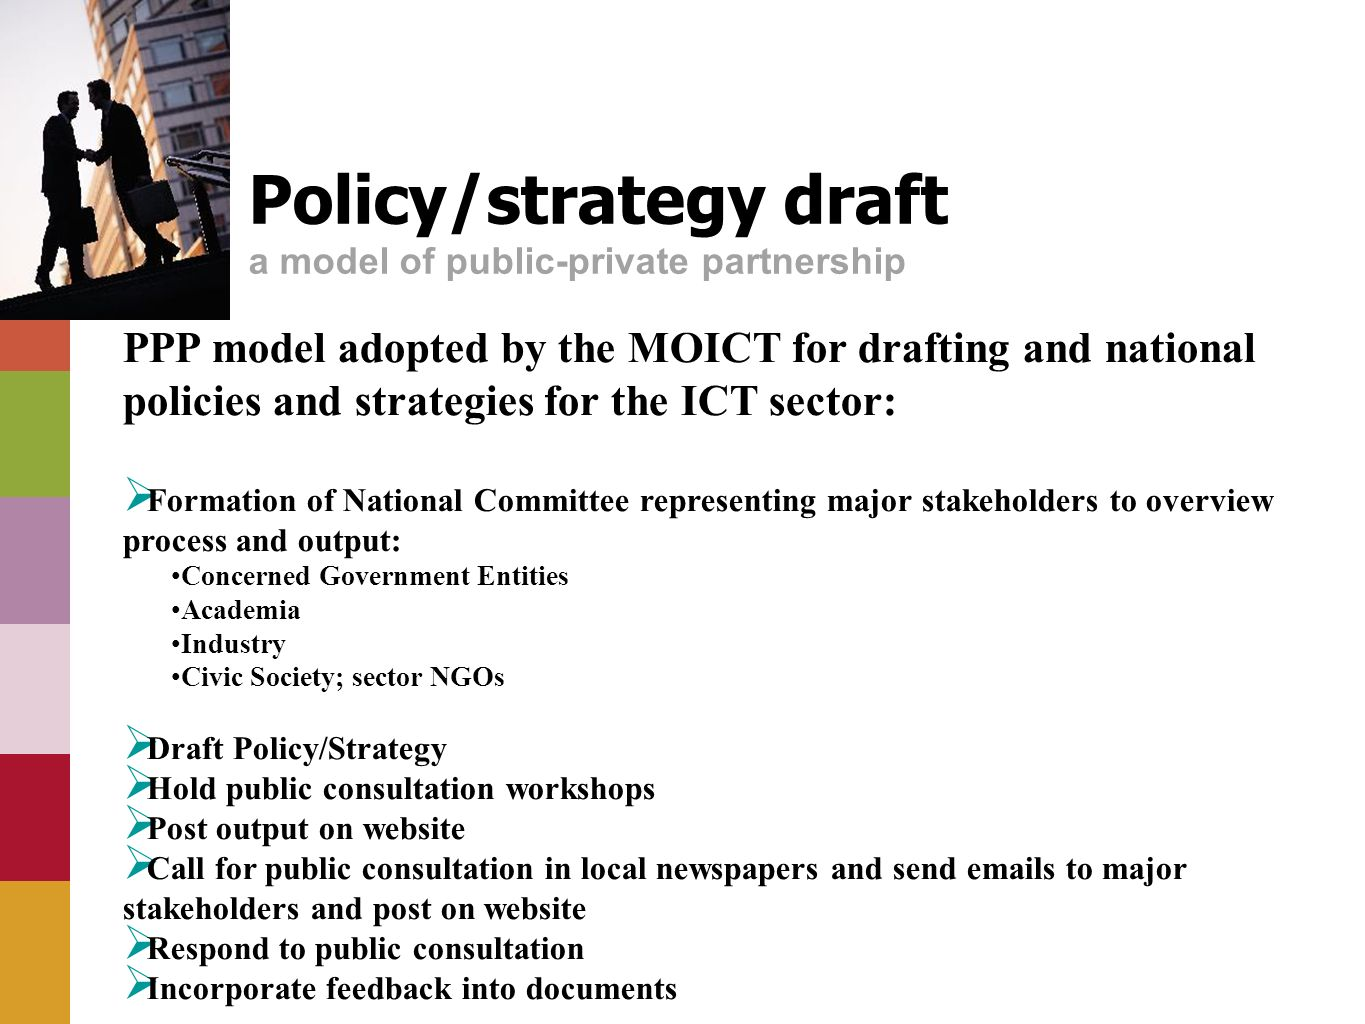 Policy/strategy draft a model of public-private partnership PPP model adopted by the MOICT for drafting and national policies and strategies for the ICT sector: Formation of National Committee representing major stakeholders to overview process and output: Concerned Government Entities Academia Industry Civic Society; sector NGOs Draft Policy/Strategy Hold public consultation workshops Post output on website Call for public consultation in local newspapers and send emails to major stakeholders and post on website Respond to public consultation Incorporate feedback into documents